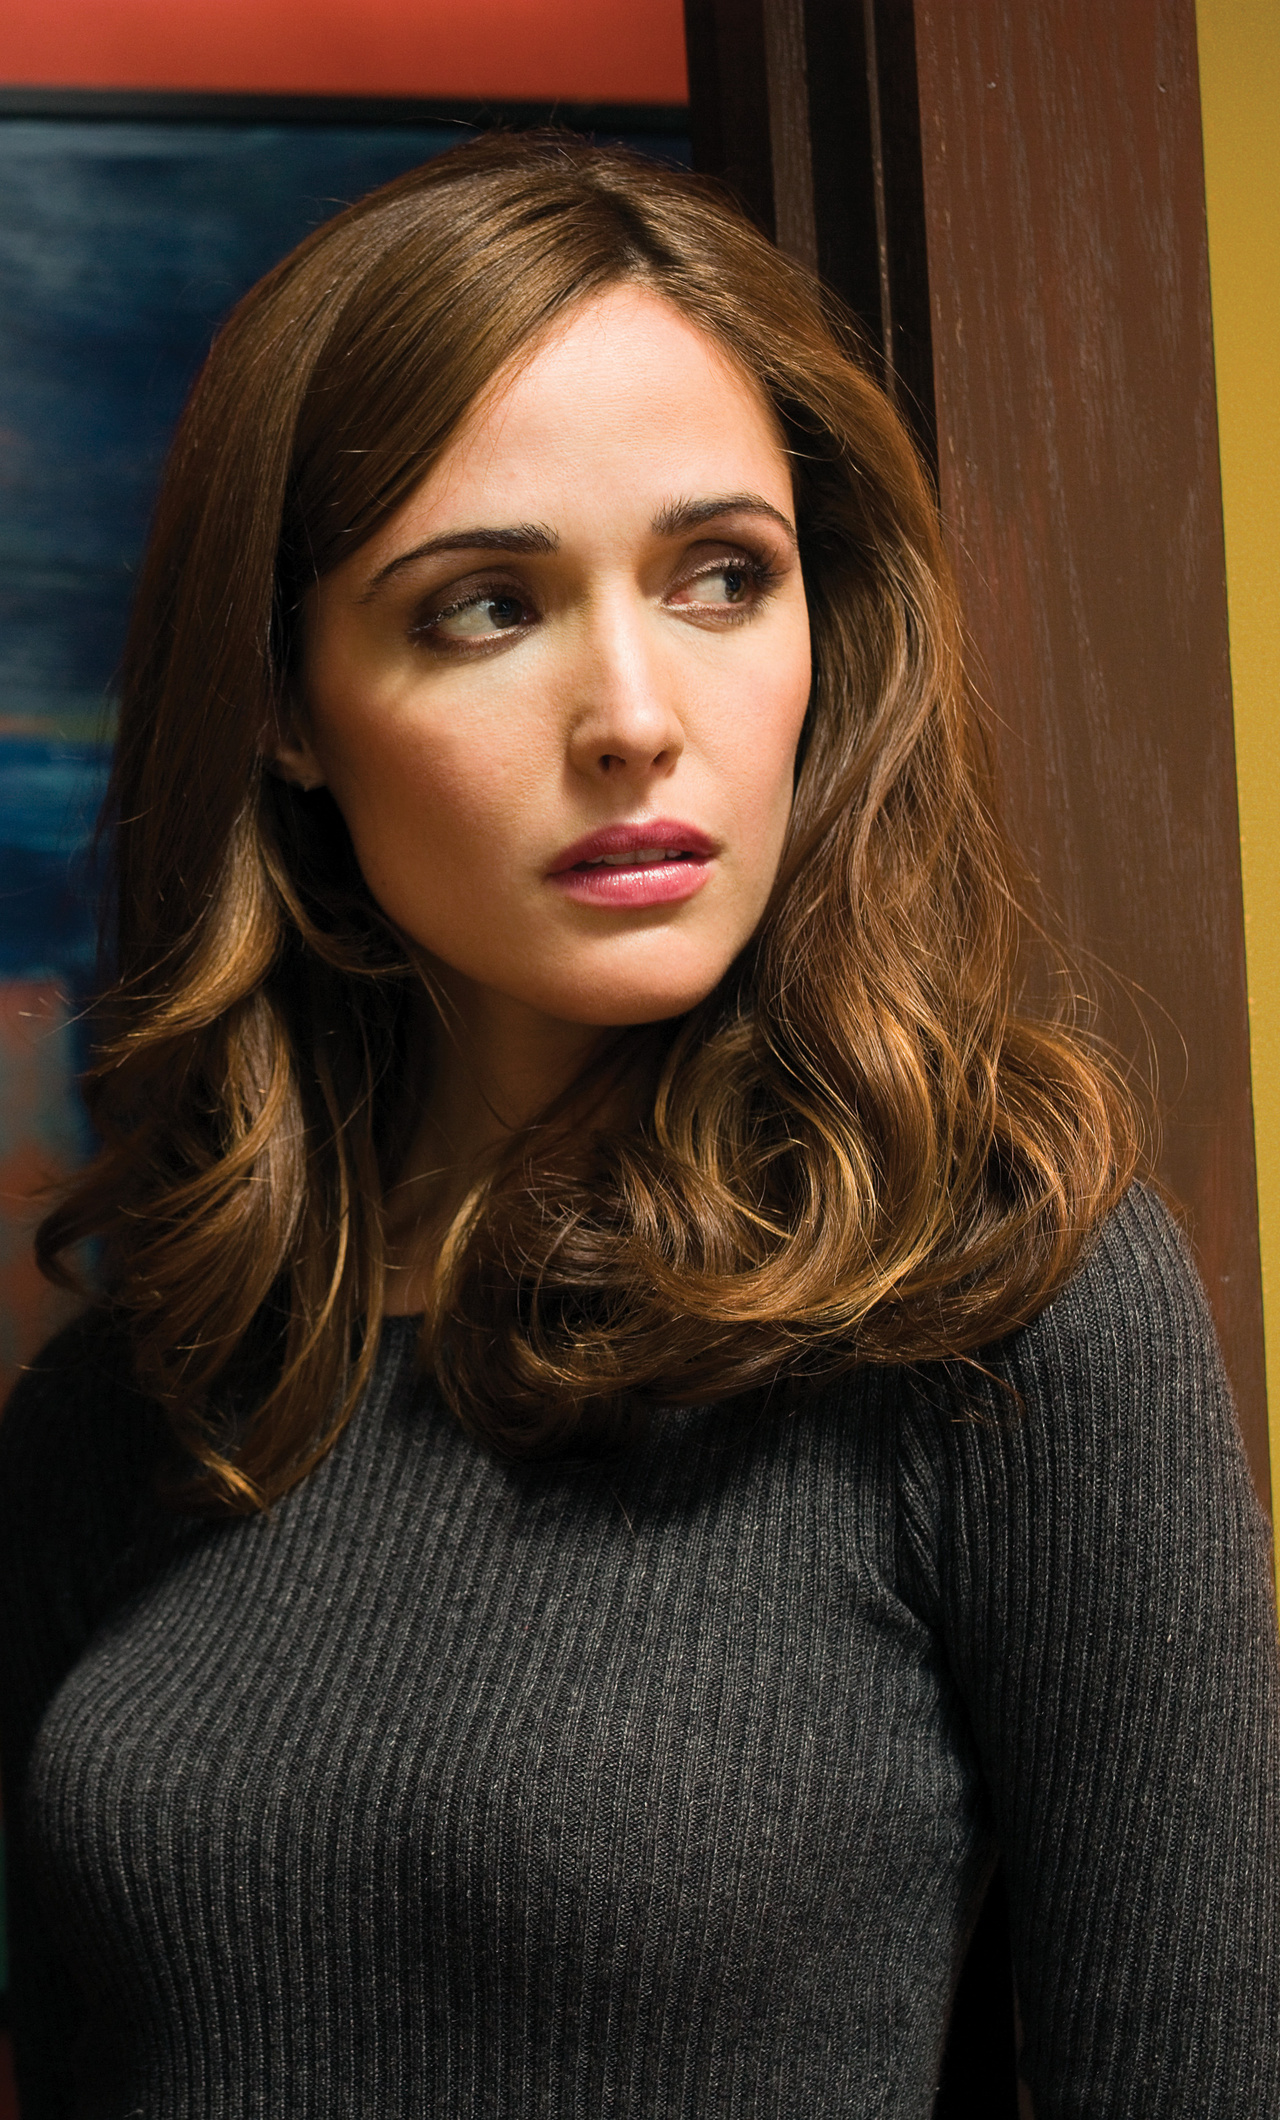 rose-byrne-2018-5k-up.jpg